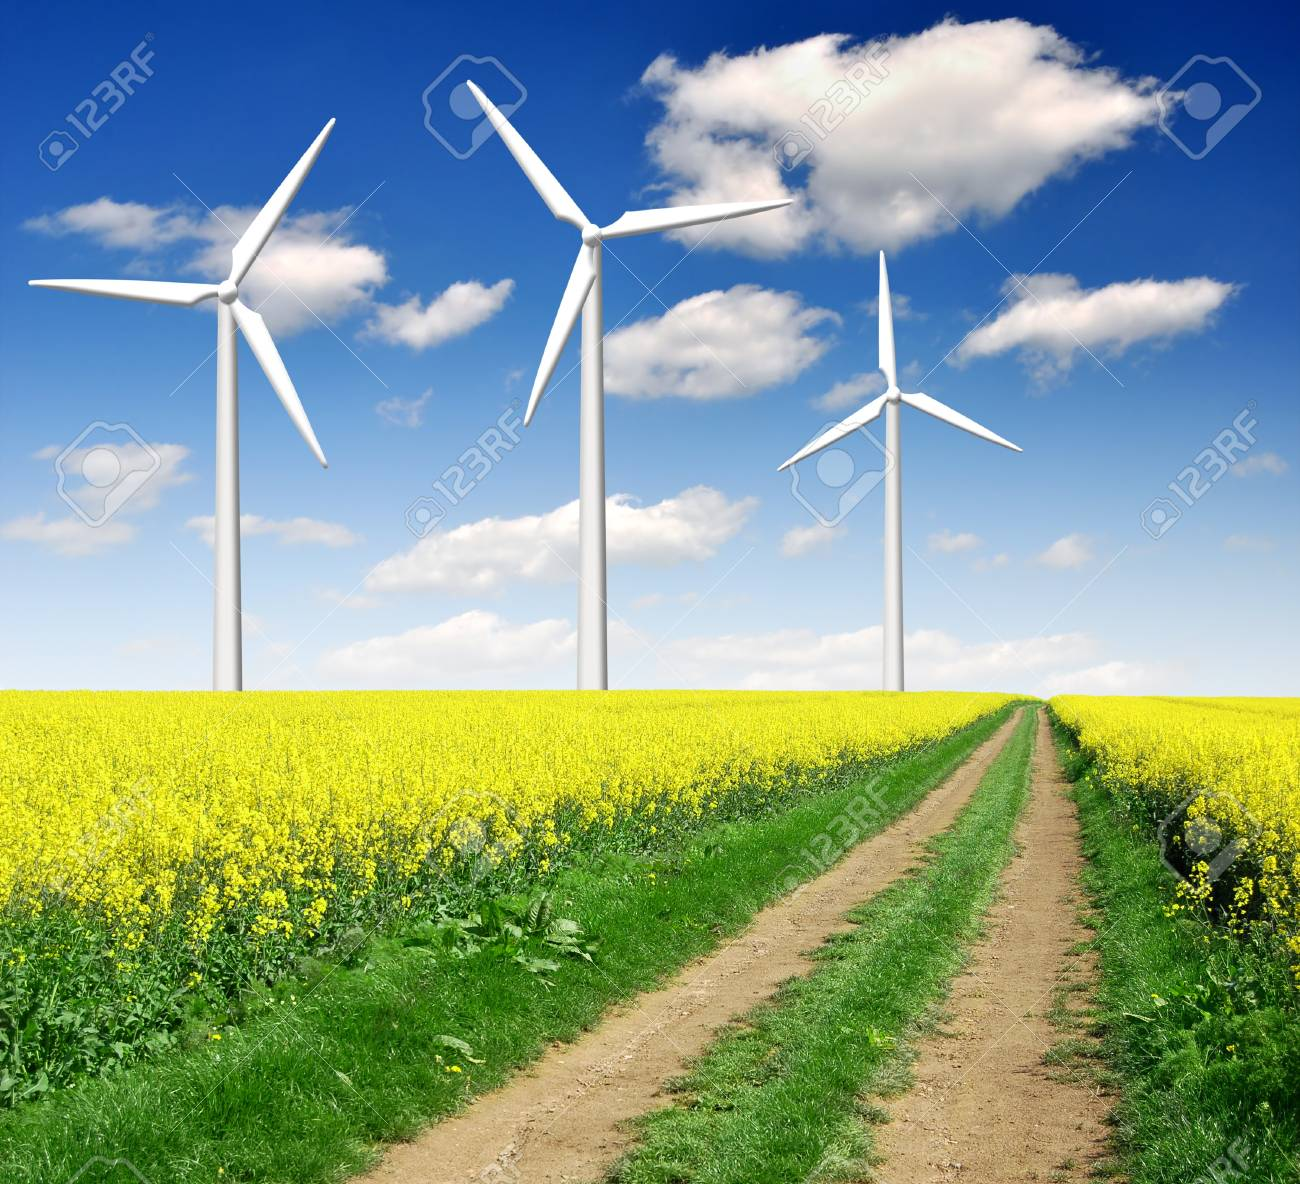 rapeseed field with wind turbine against the blue sky Stock Photo - 11287331